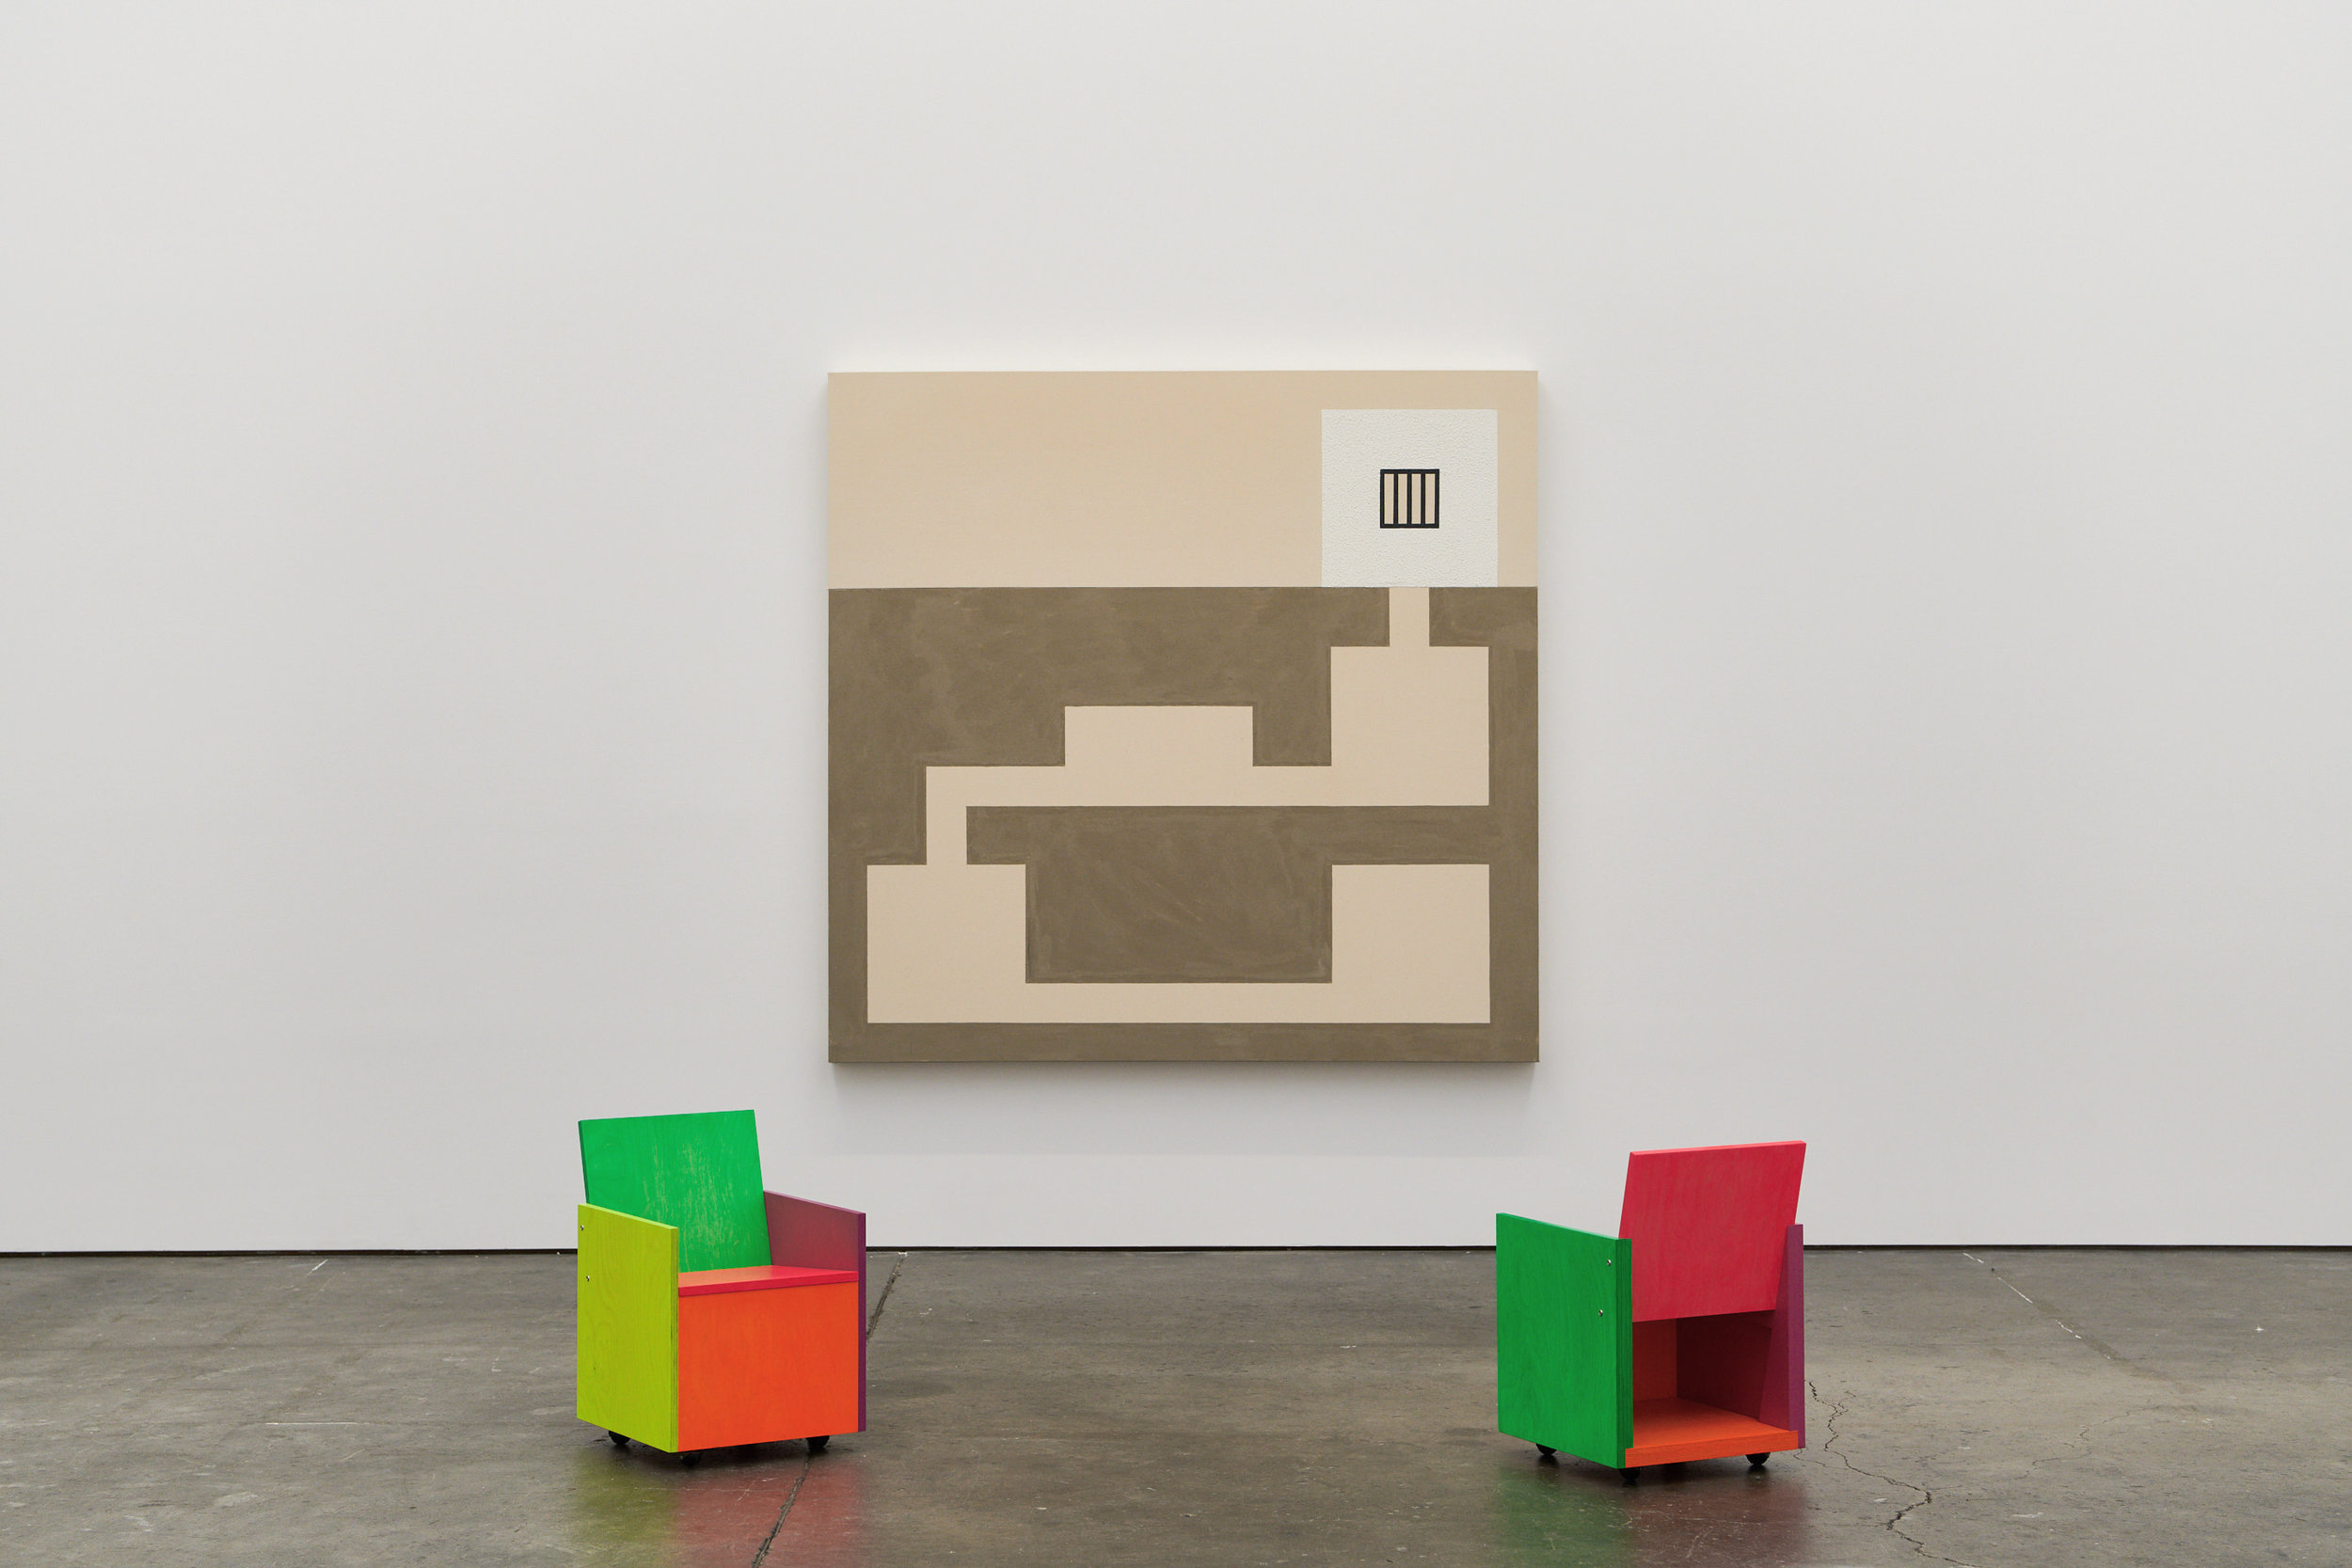 FEB 2018PETER, PAUL AND MARYAdrian Rosenfeld Gallery, San Francisco - A group show of Peter Halley, Mary Heilmann and Paul Lee, curated by Maccarone. Through March 3rd.Link.